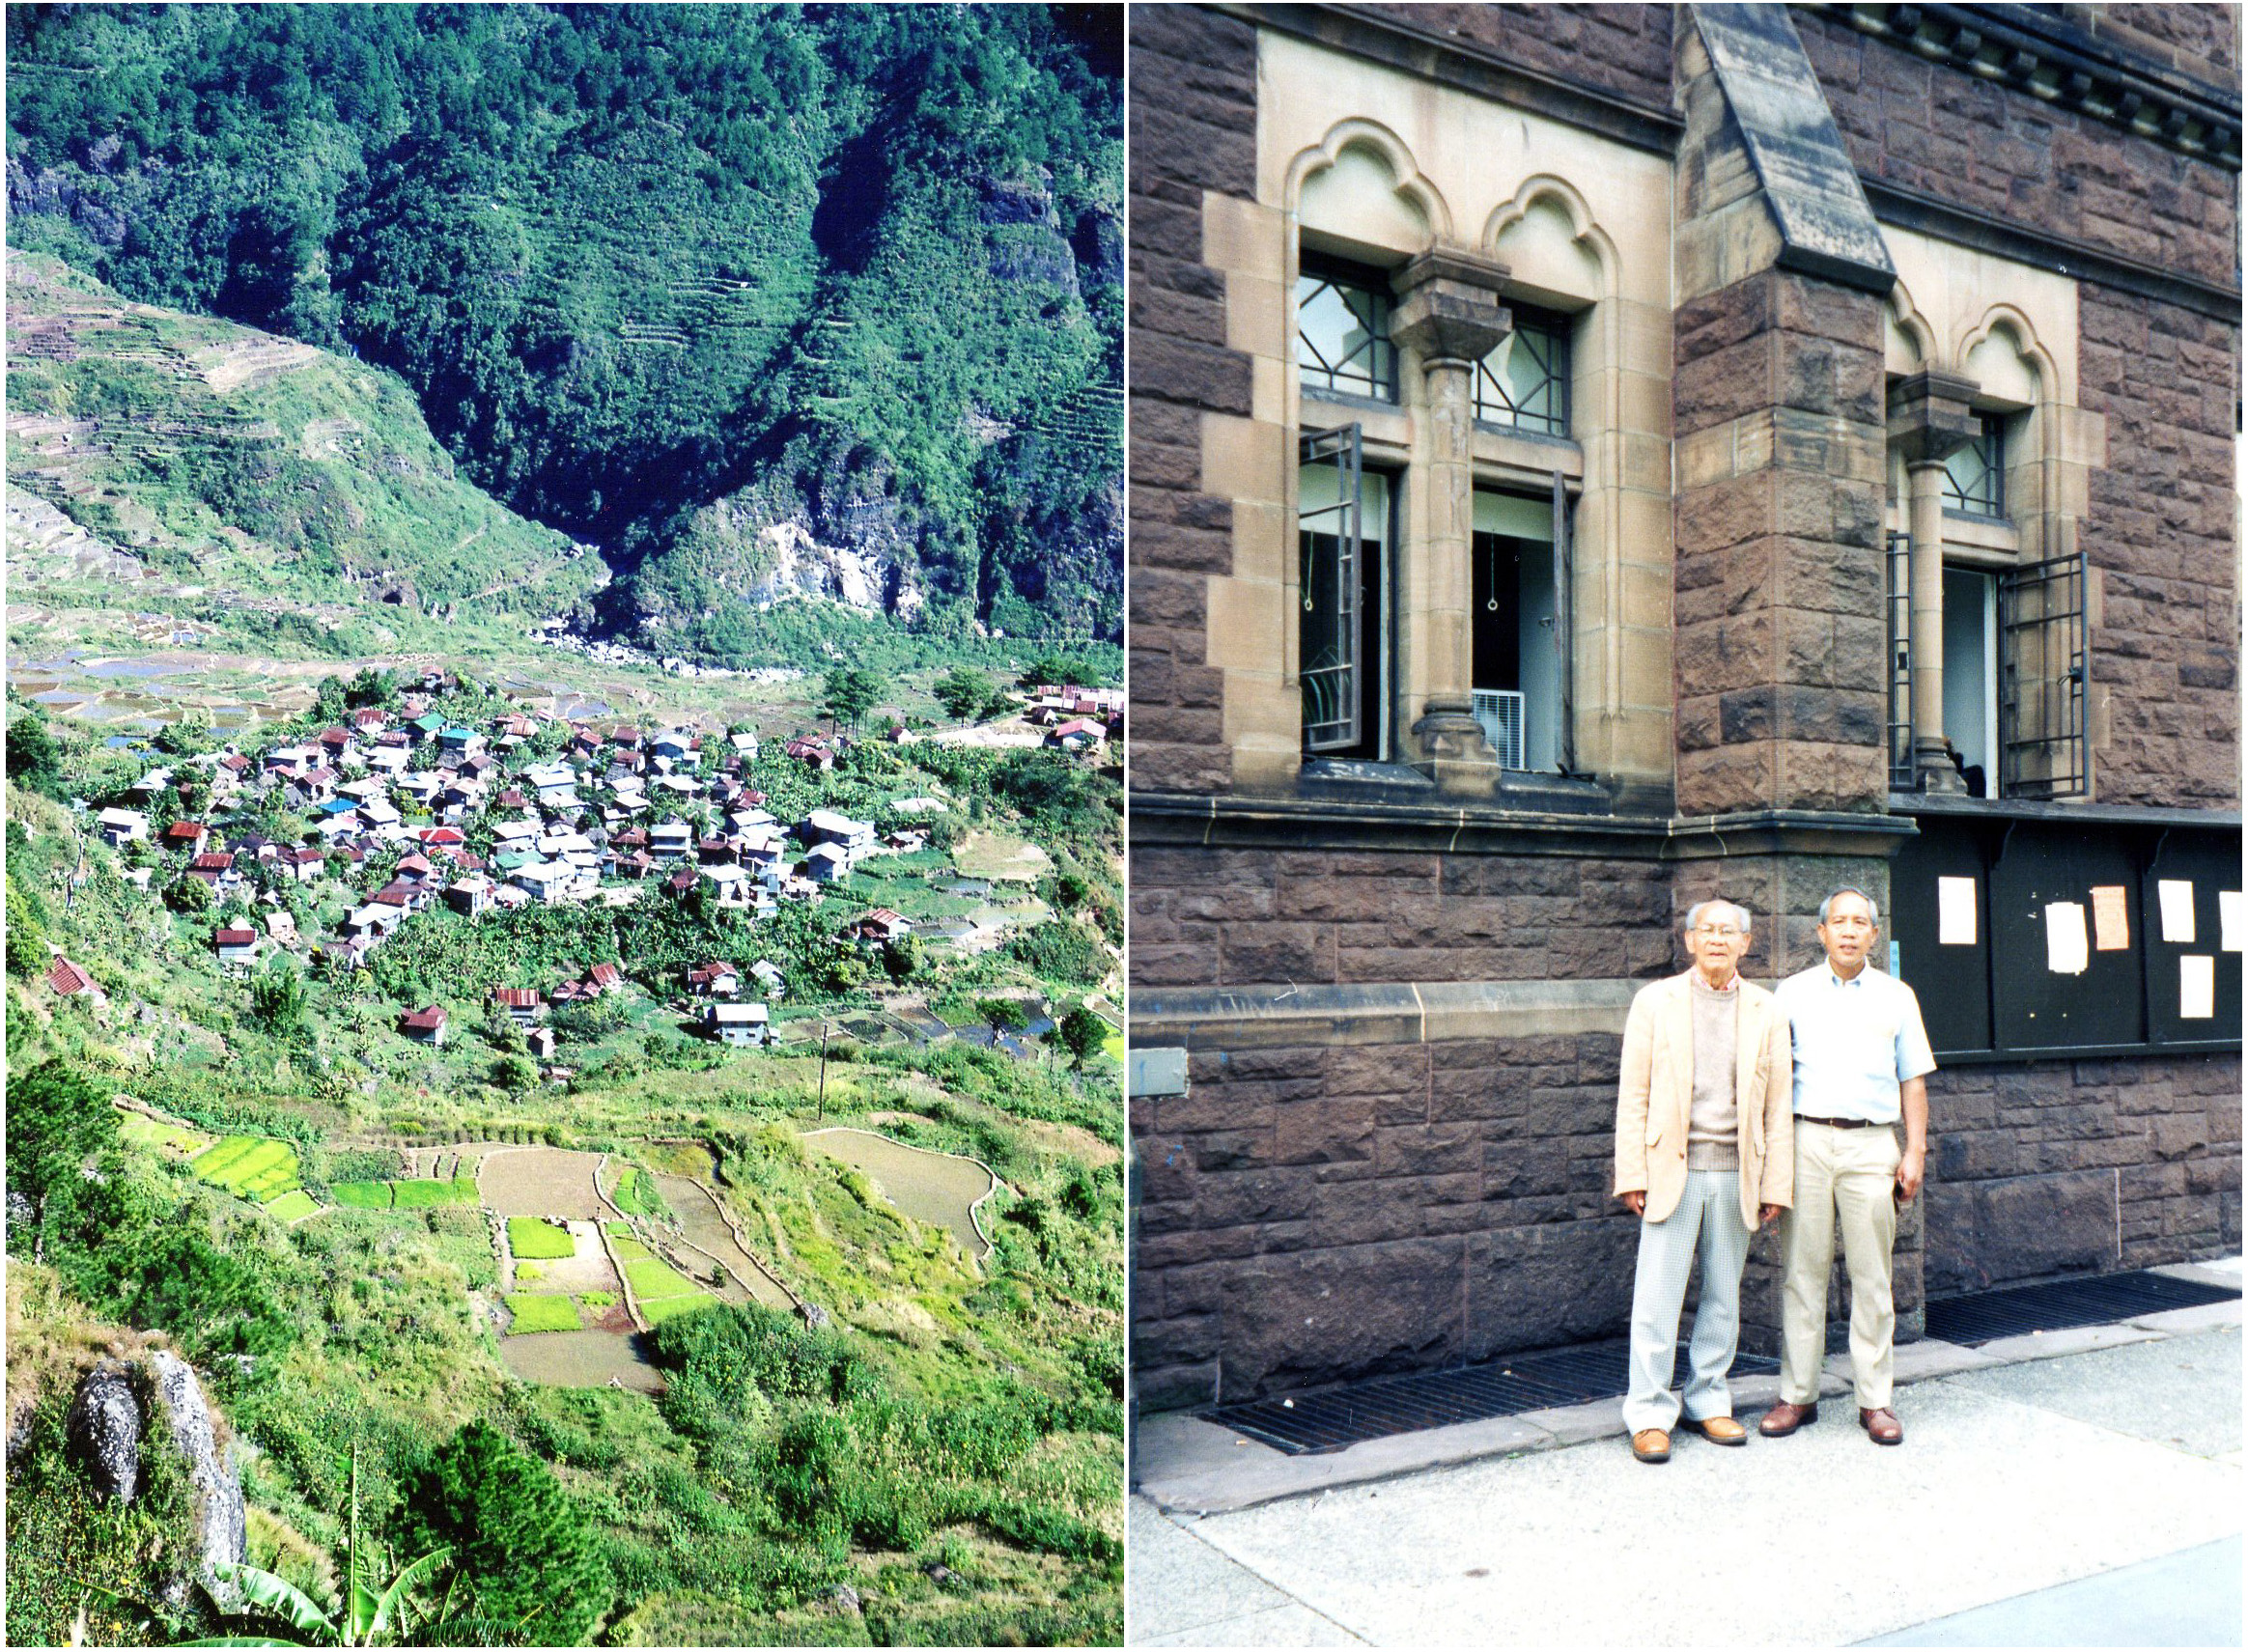 LEFT Photo: Fedilisan Village viewed from cliff above, at the north end of the Fedilisan-Tanulong Valley 2010 | RIGHT Photo: Paul C. Laus and Albert S. Bacdayan revisiting Trinity College, Hartford, CT, their  alma mater, 1998.